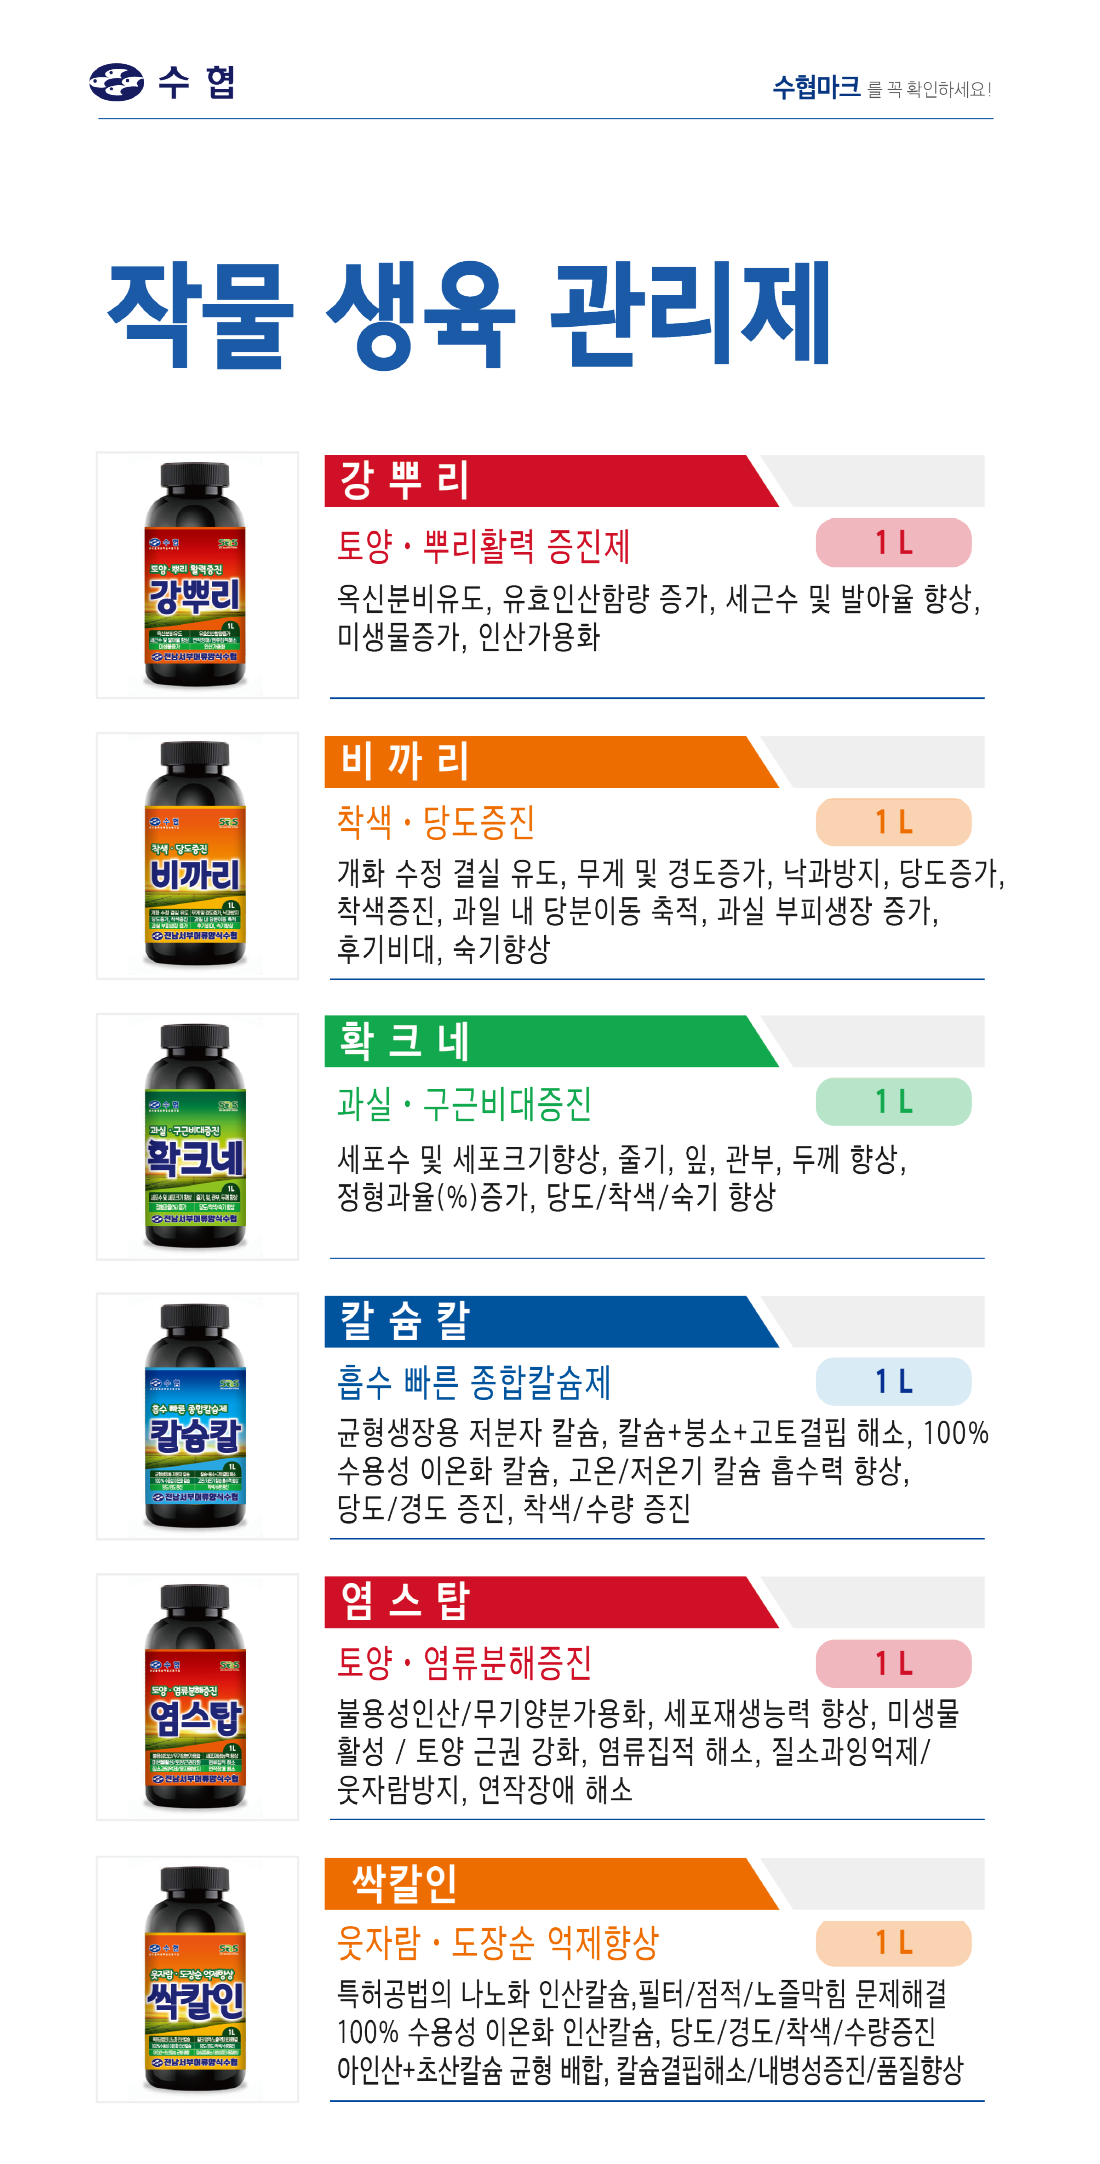 http://suhyup2019.handpr.kr/bs/se2/imgup/1589964526det1_s.png